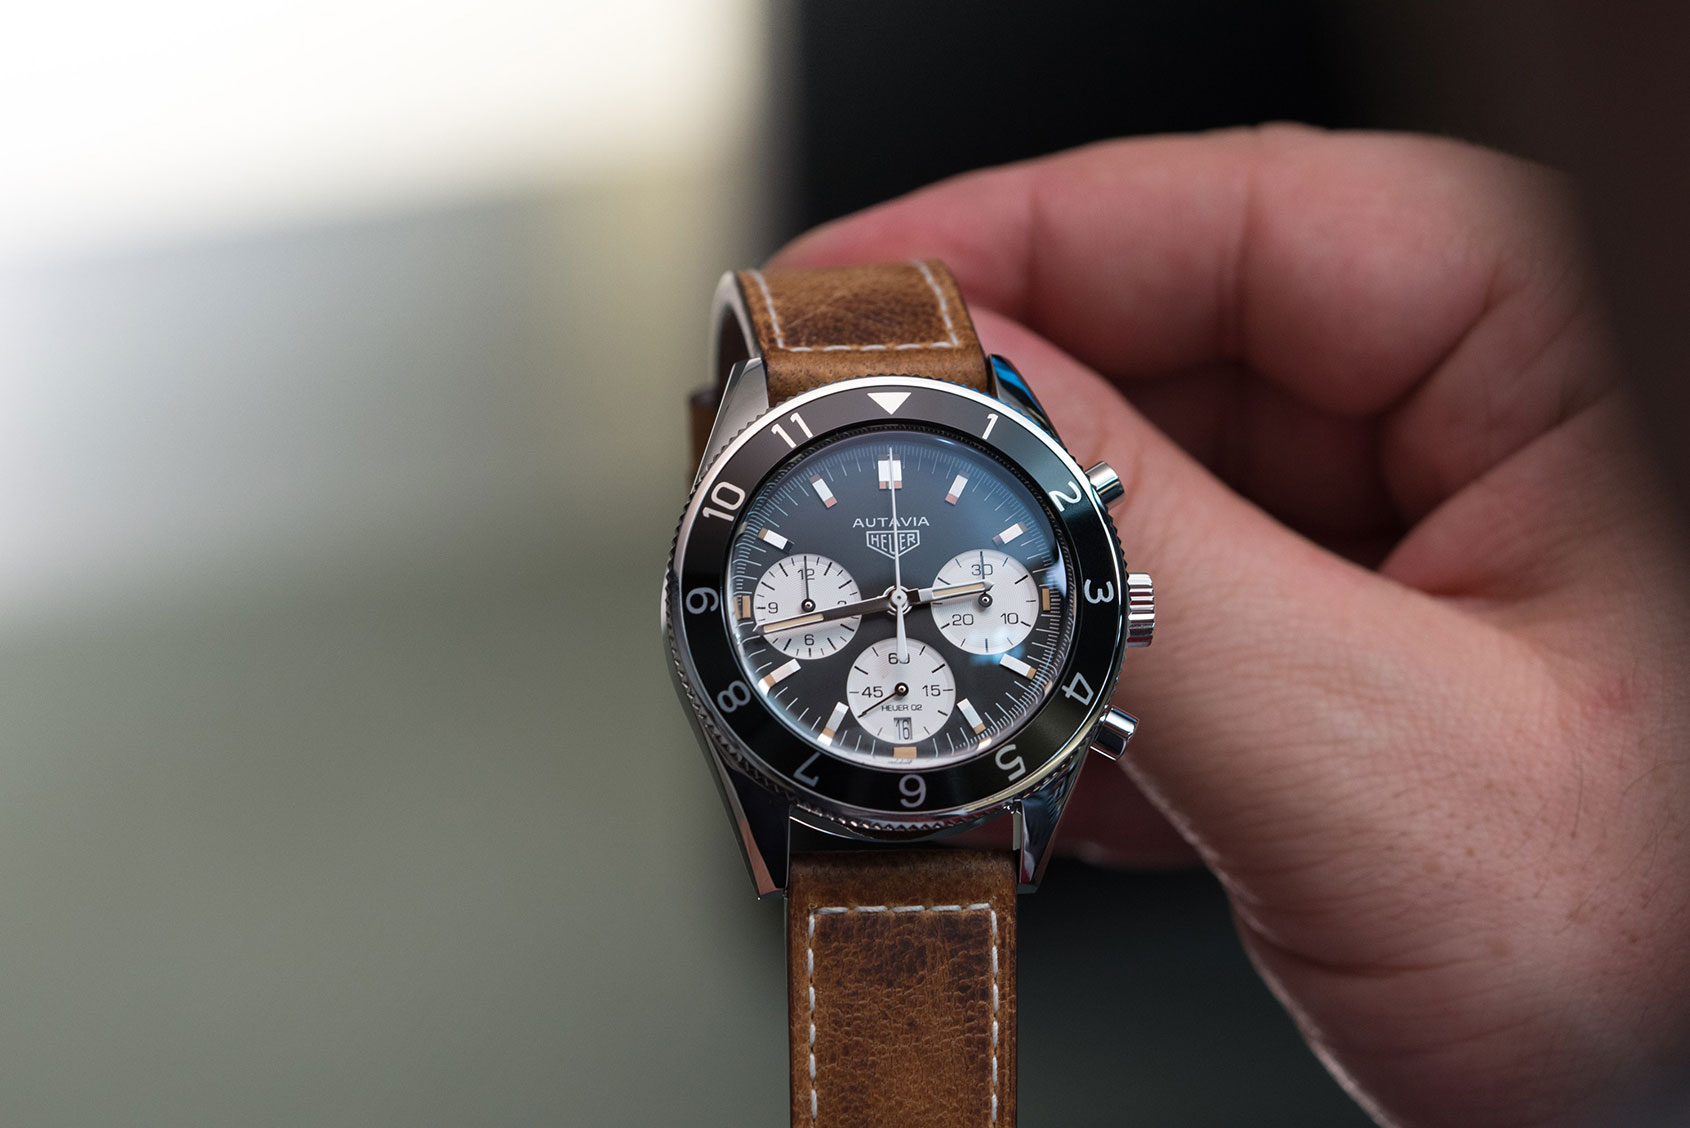 Hands on return of an icon the tag heuer autavia time and tide watches for Tag heuer autavia